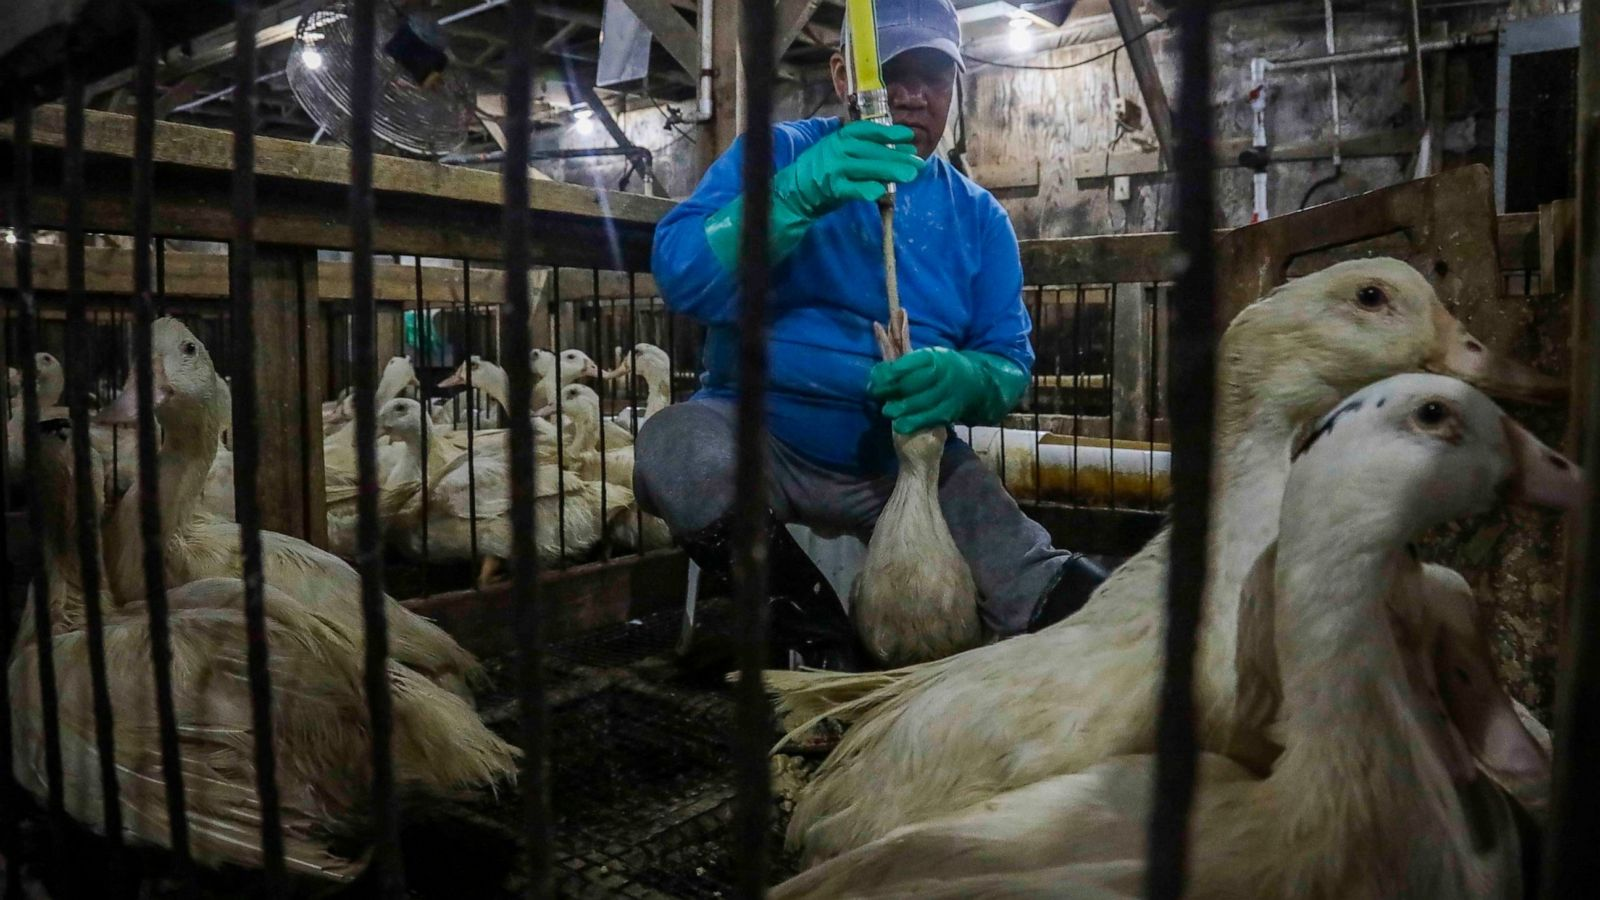 Man force feeding a goose in an indoor pen with other geese watching